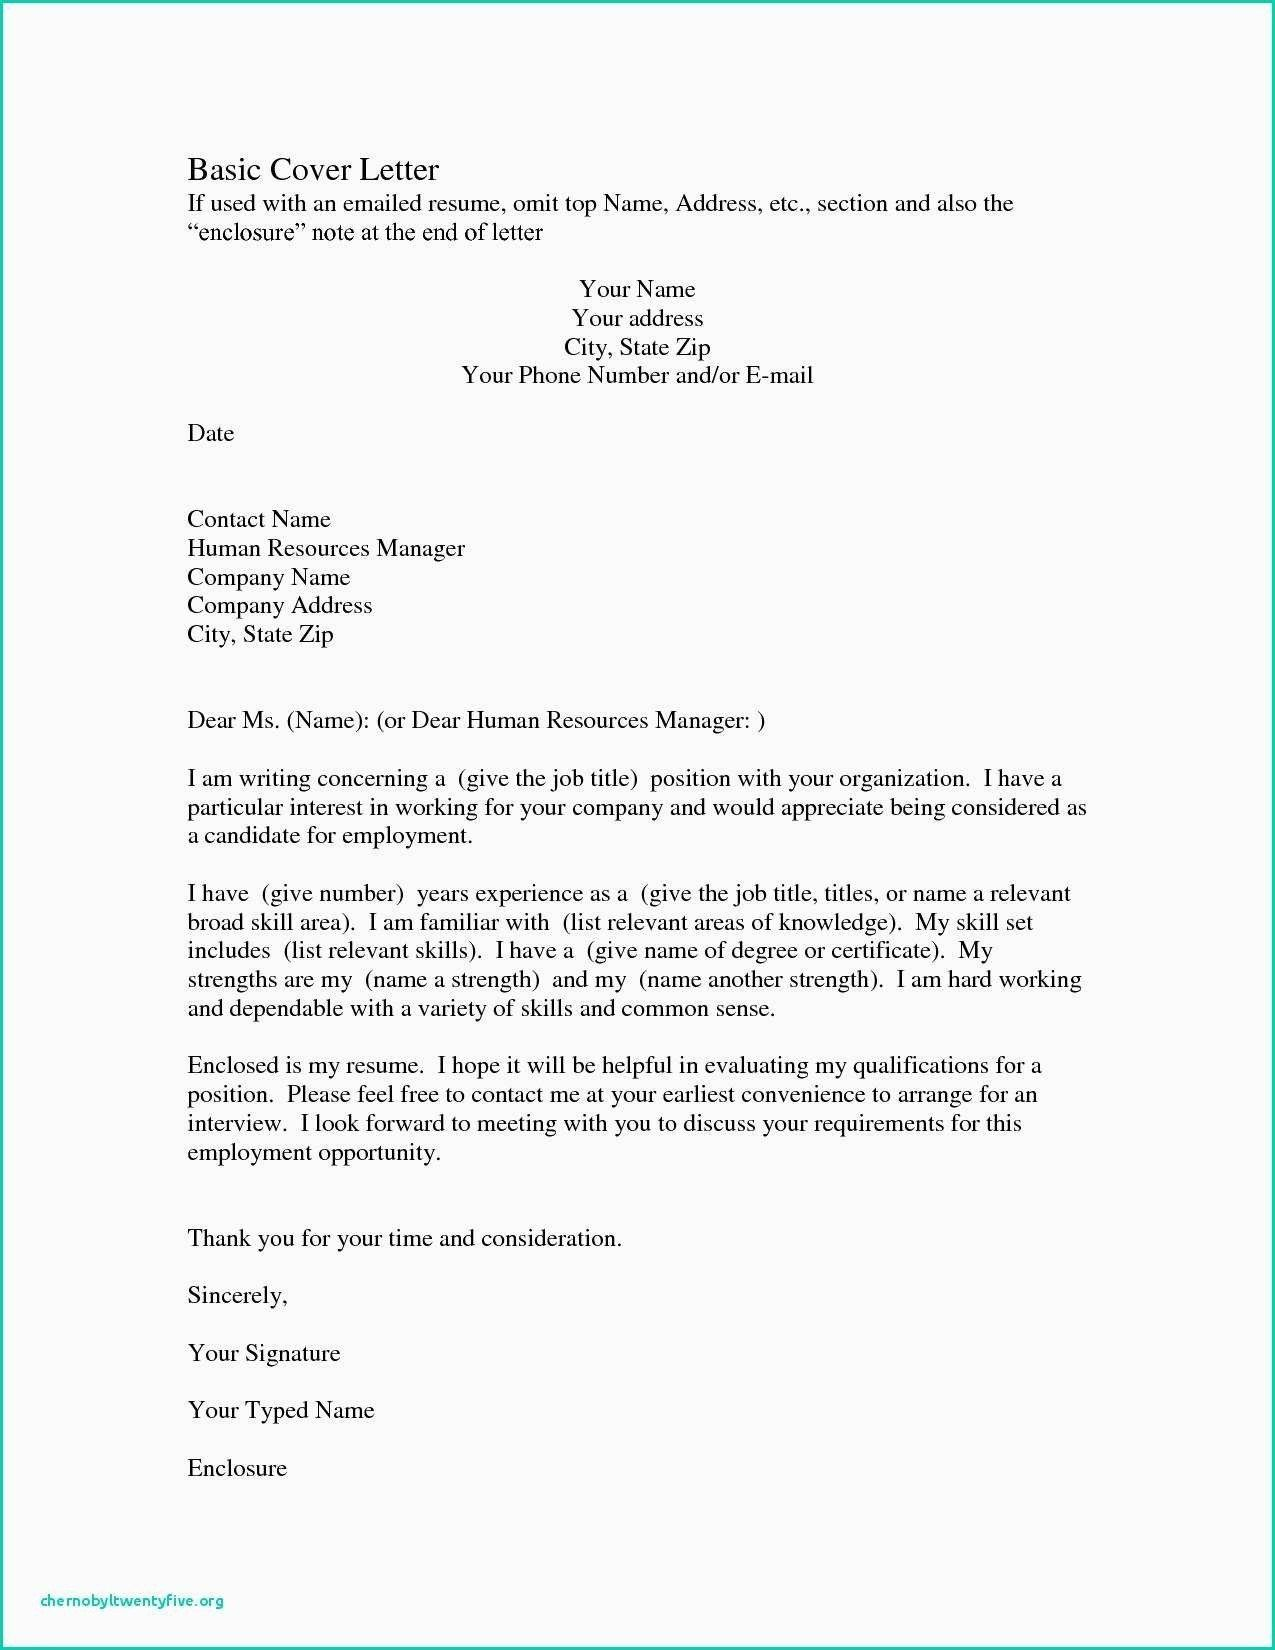 When Creating Your Resume You Should Beautiful Job Requirement Letter Job Cover Letter Cover Letter For Resume Basic Cover Letter